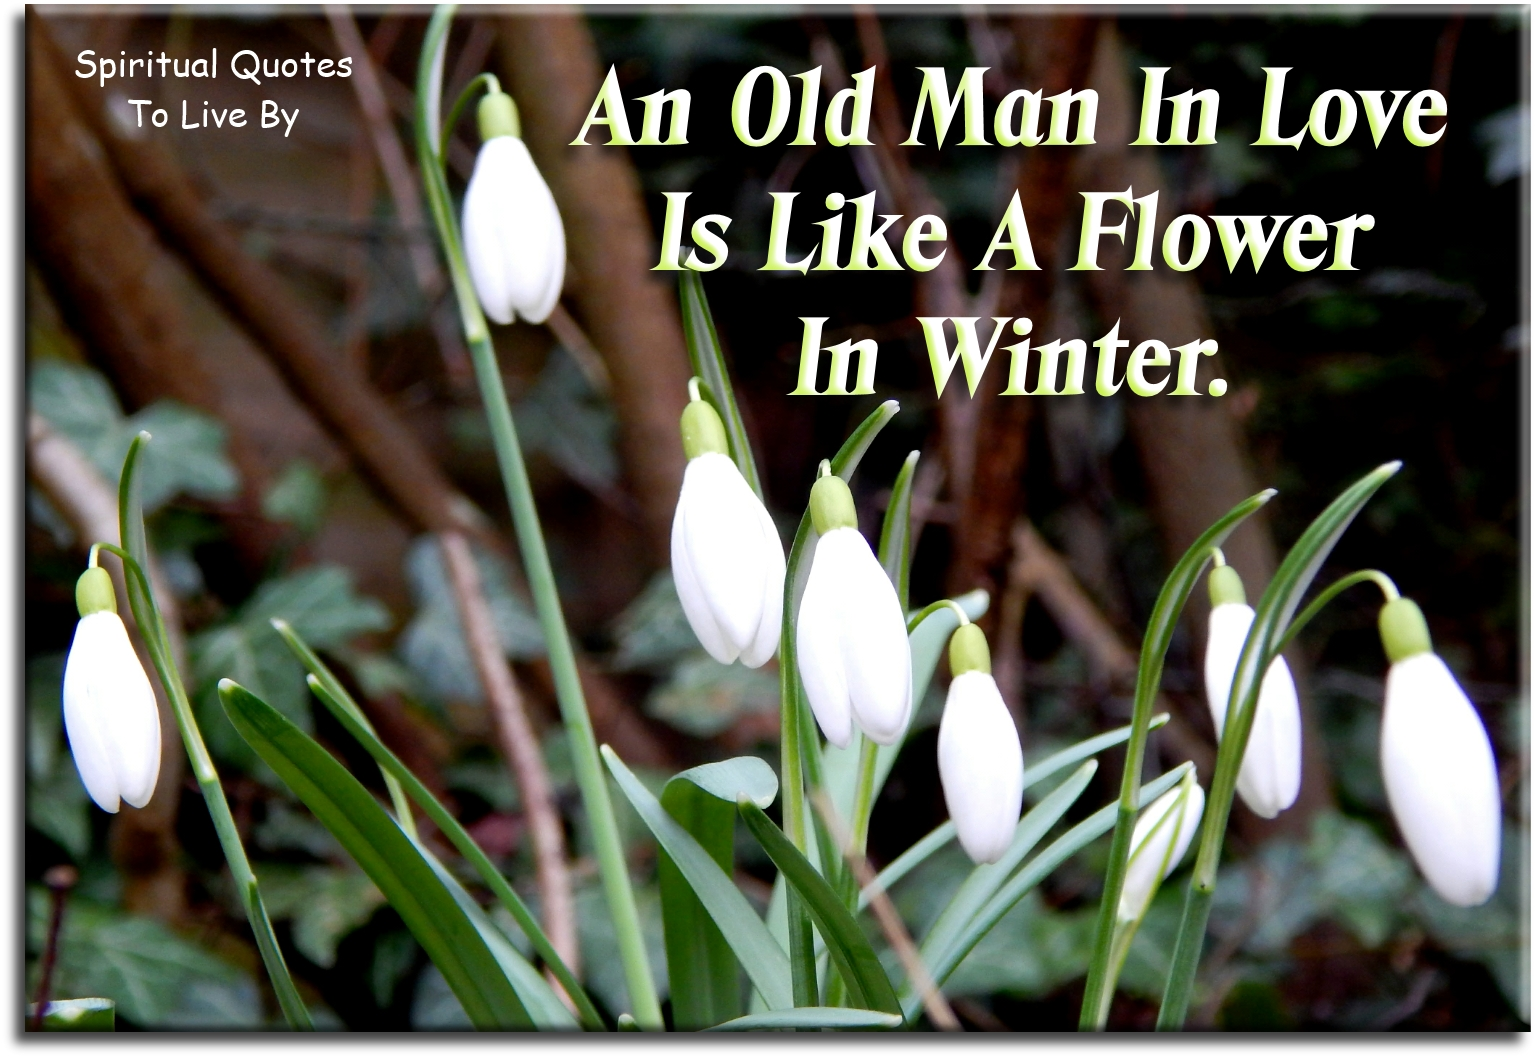 Proverb: An old man in love is like a flower in winter. - Spiritual Quotes To Live By